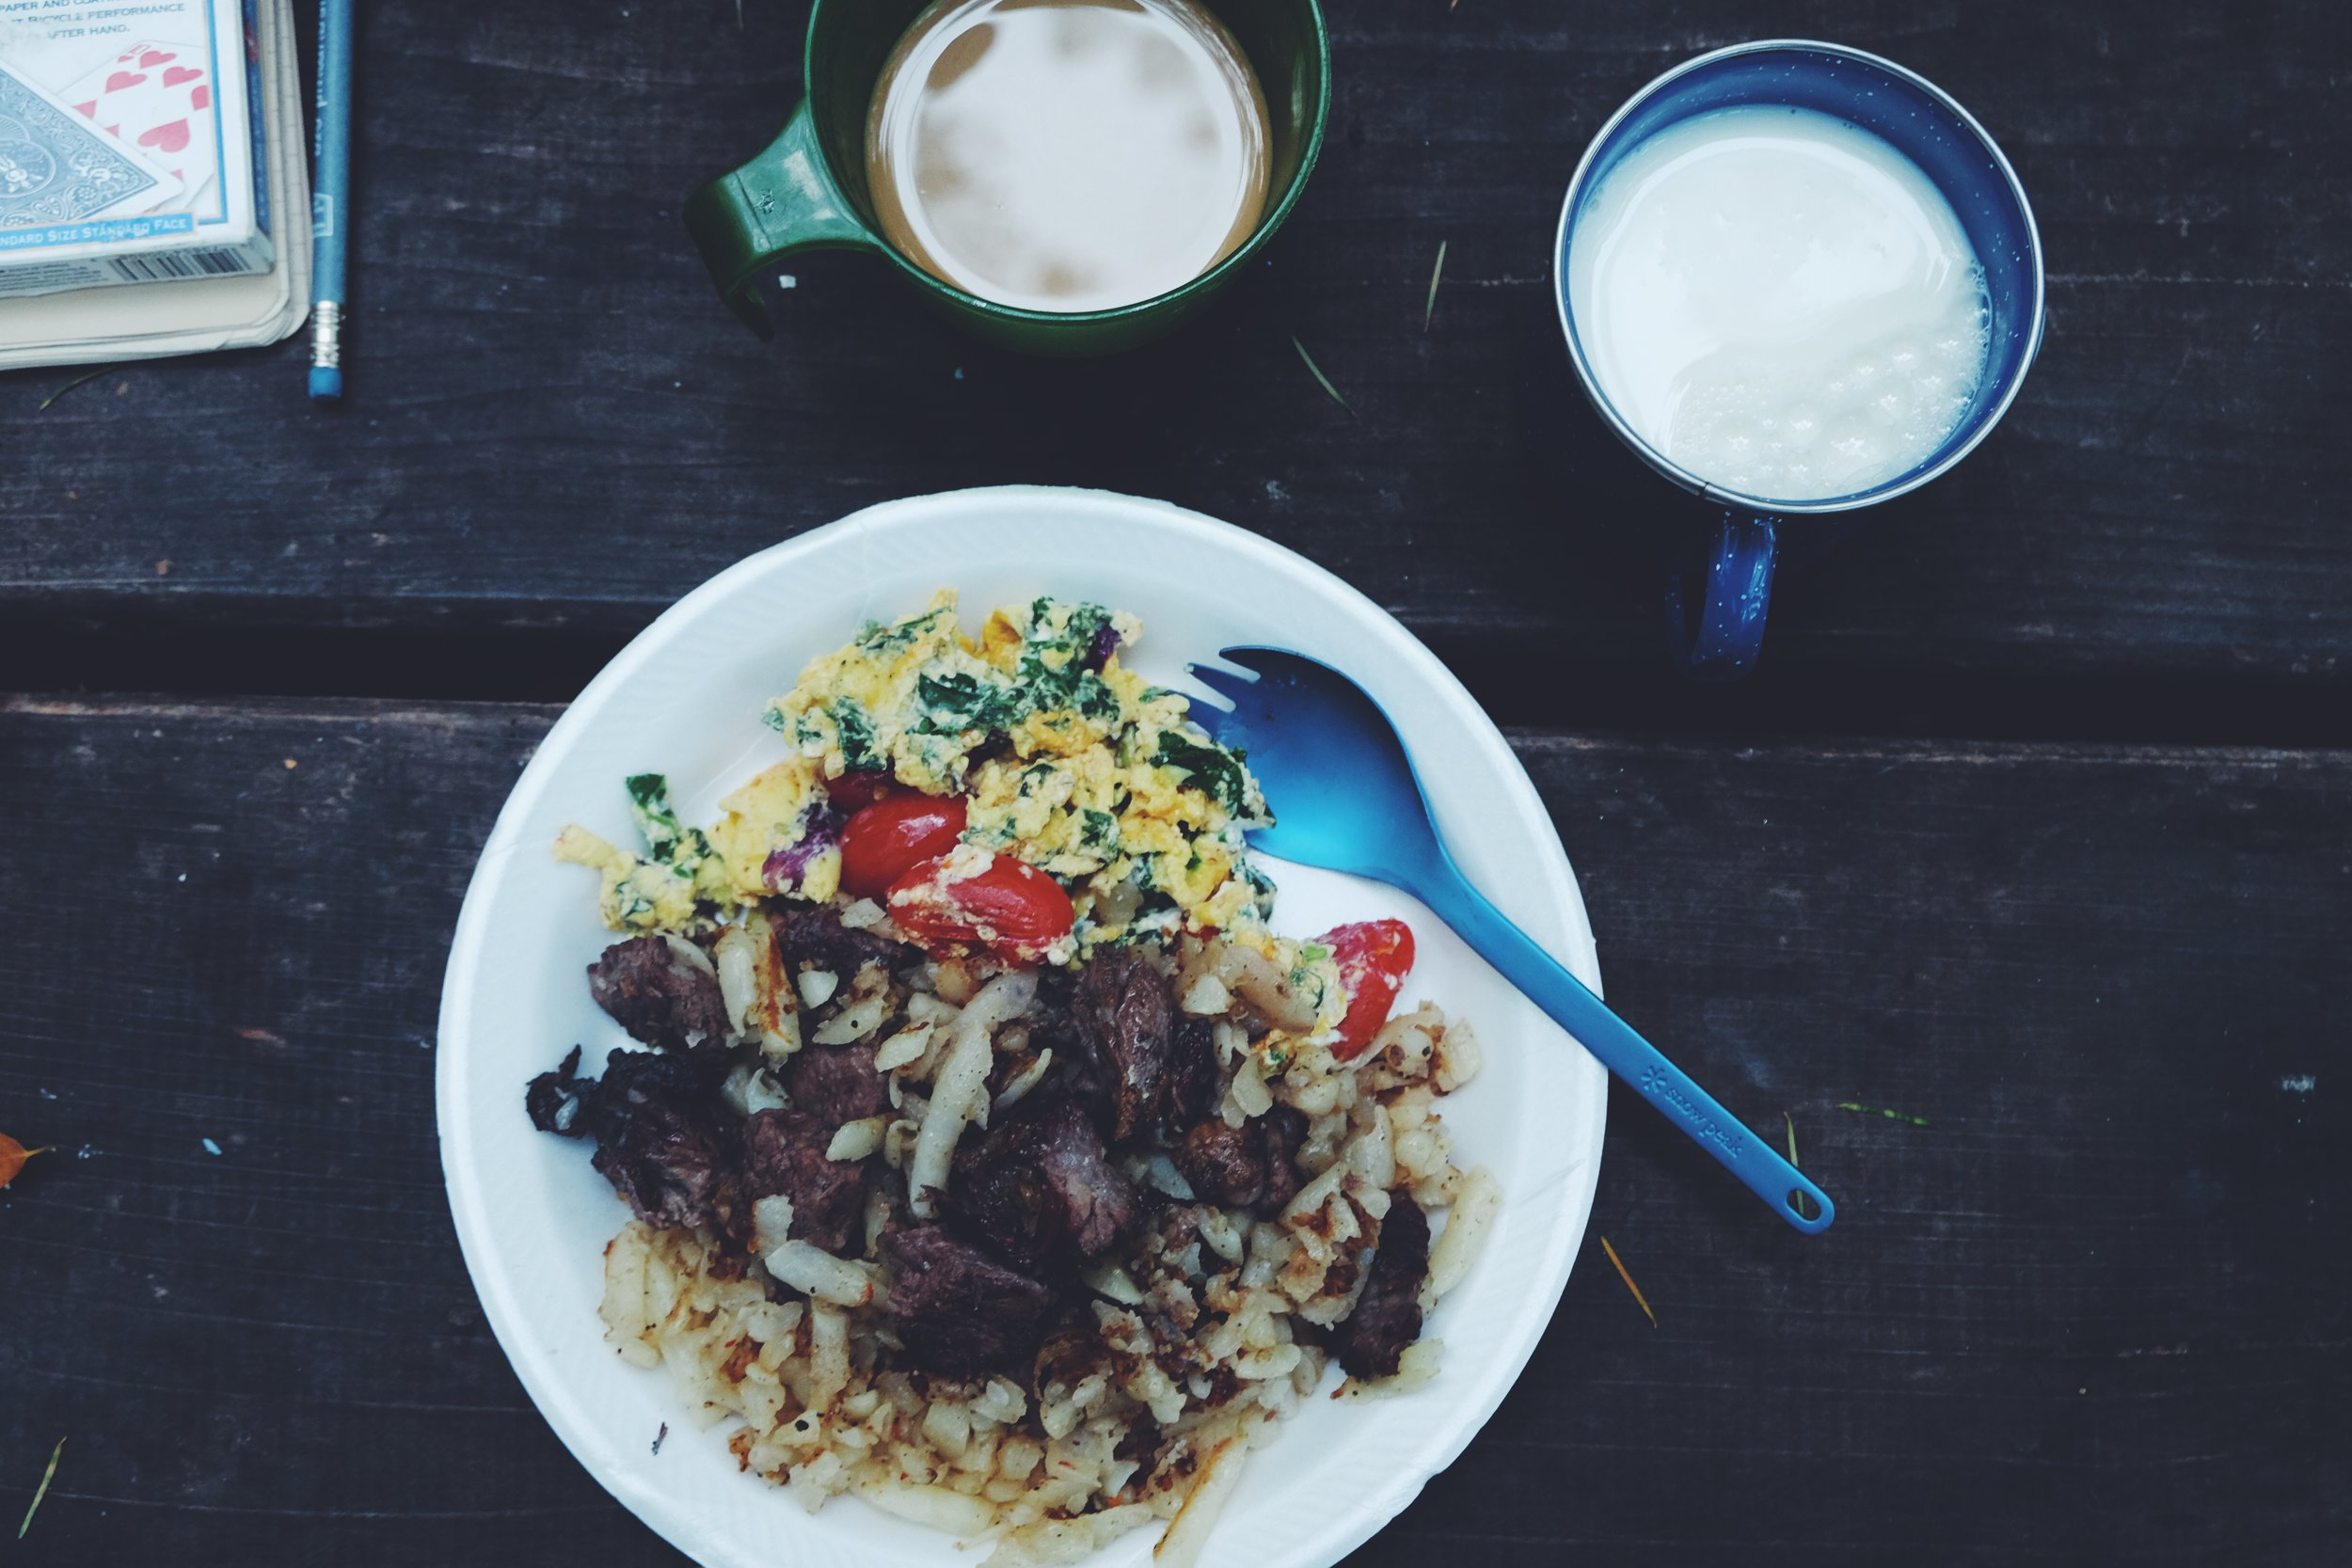 Megameals are important when camping..even if I cant eat it all.  Here we have hash browns, eggs whites with goat cheese + kale + cherry tomatoes, and left over ribeye steak from the night before.  Coffee and milk to compliment the buds.  #MikeDsKitchen